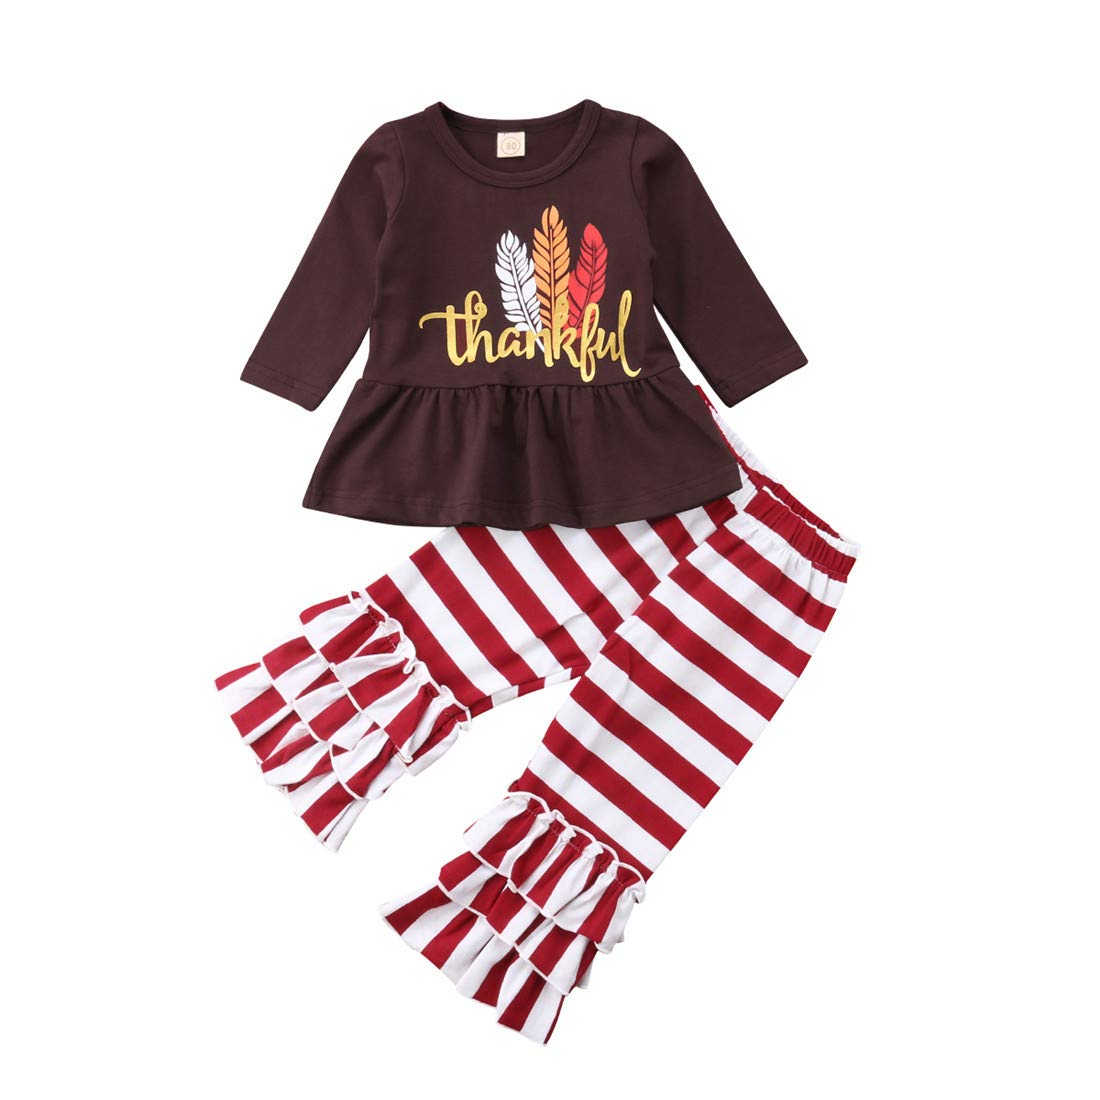 4f8fd18c8 2Pcs/Set Thanksgiving Outfit for Toddler Girls Long Sleeve Tutu Top Shirt +  Strips Flared Pants (Brown, 4-5 Years)